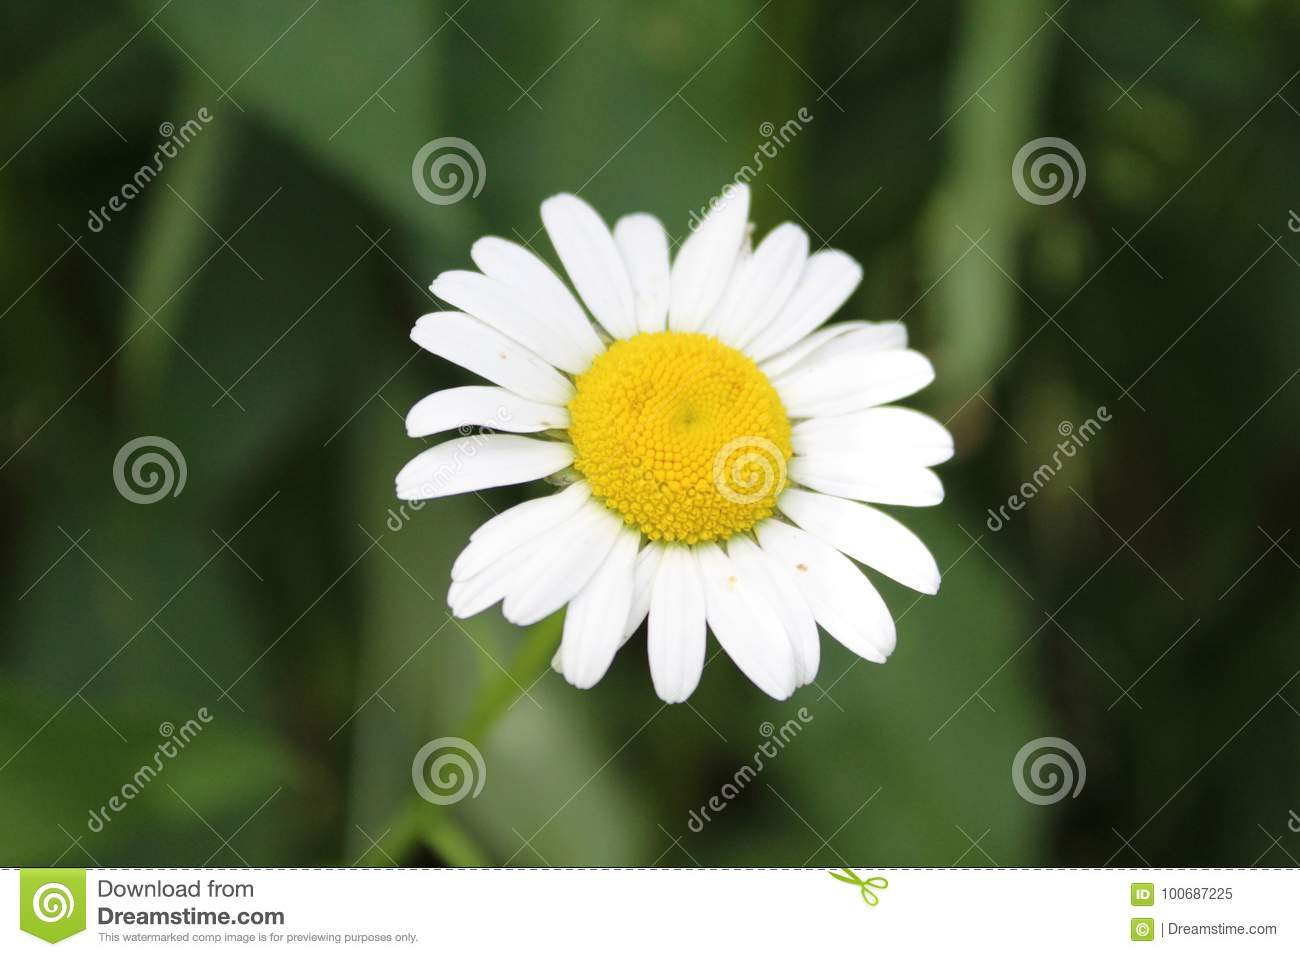 White Flower With Yellow Middle With Green Background Stock Image